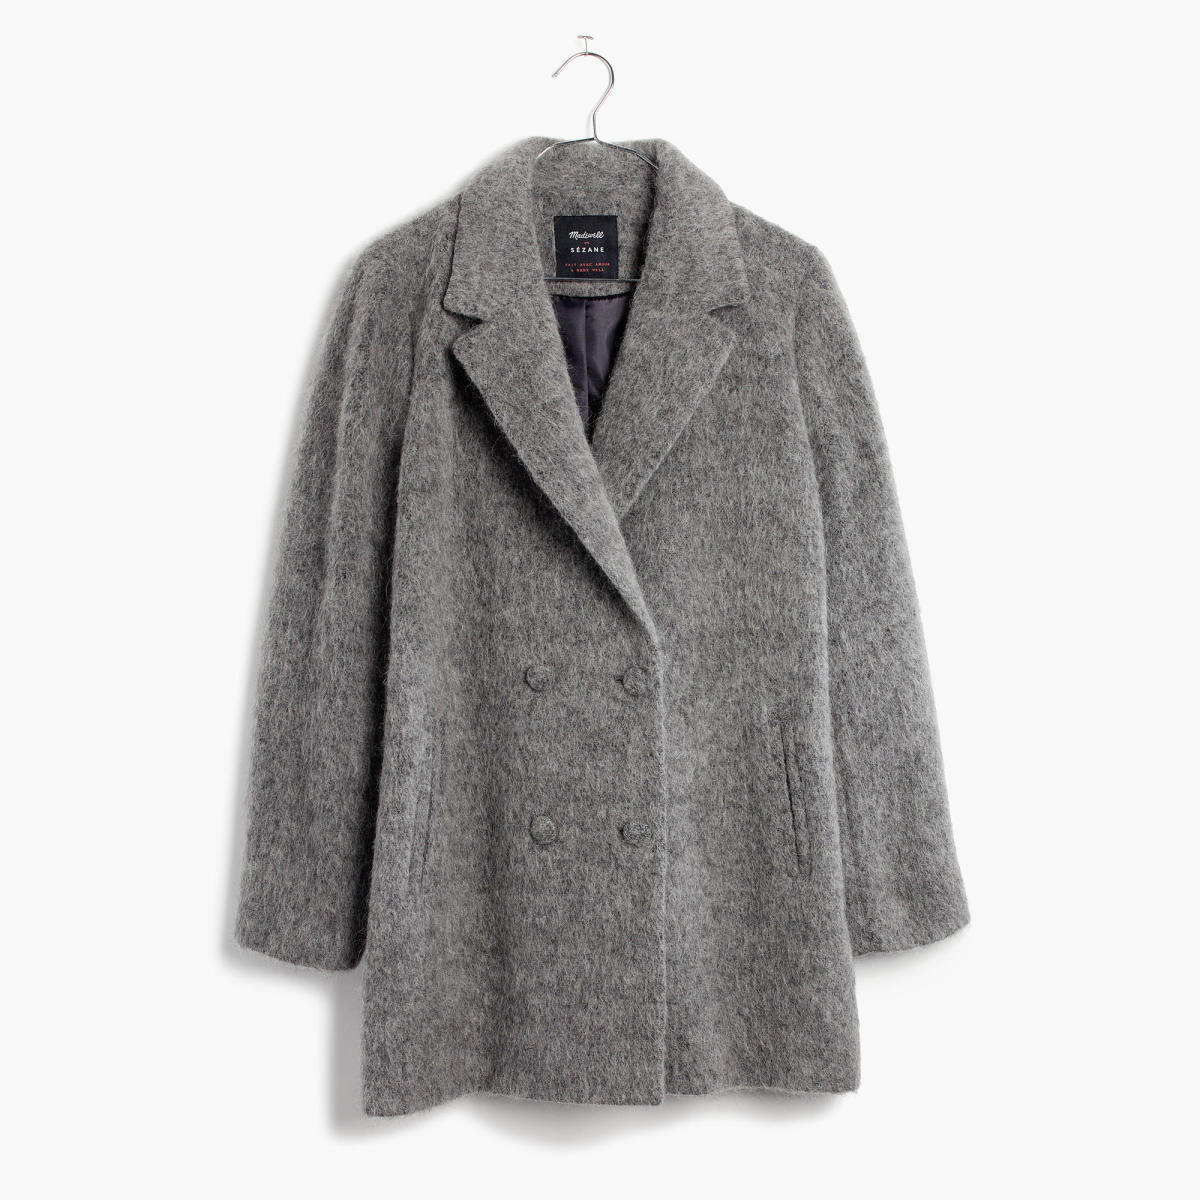 Madewell et Sézane Octave Blazer Coat, $268, available at Madewell